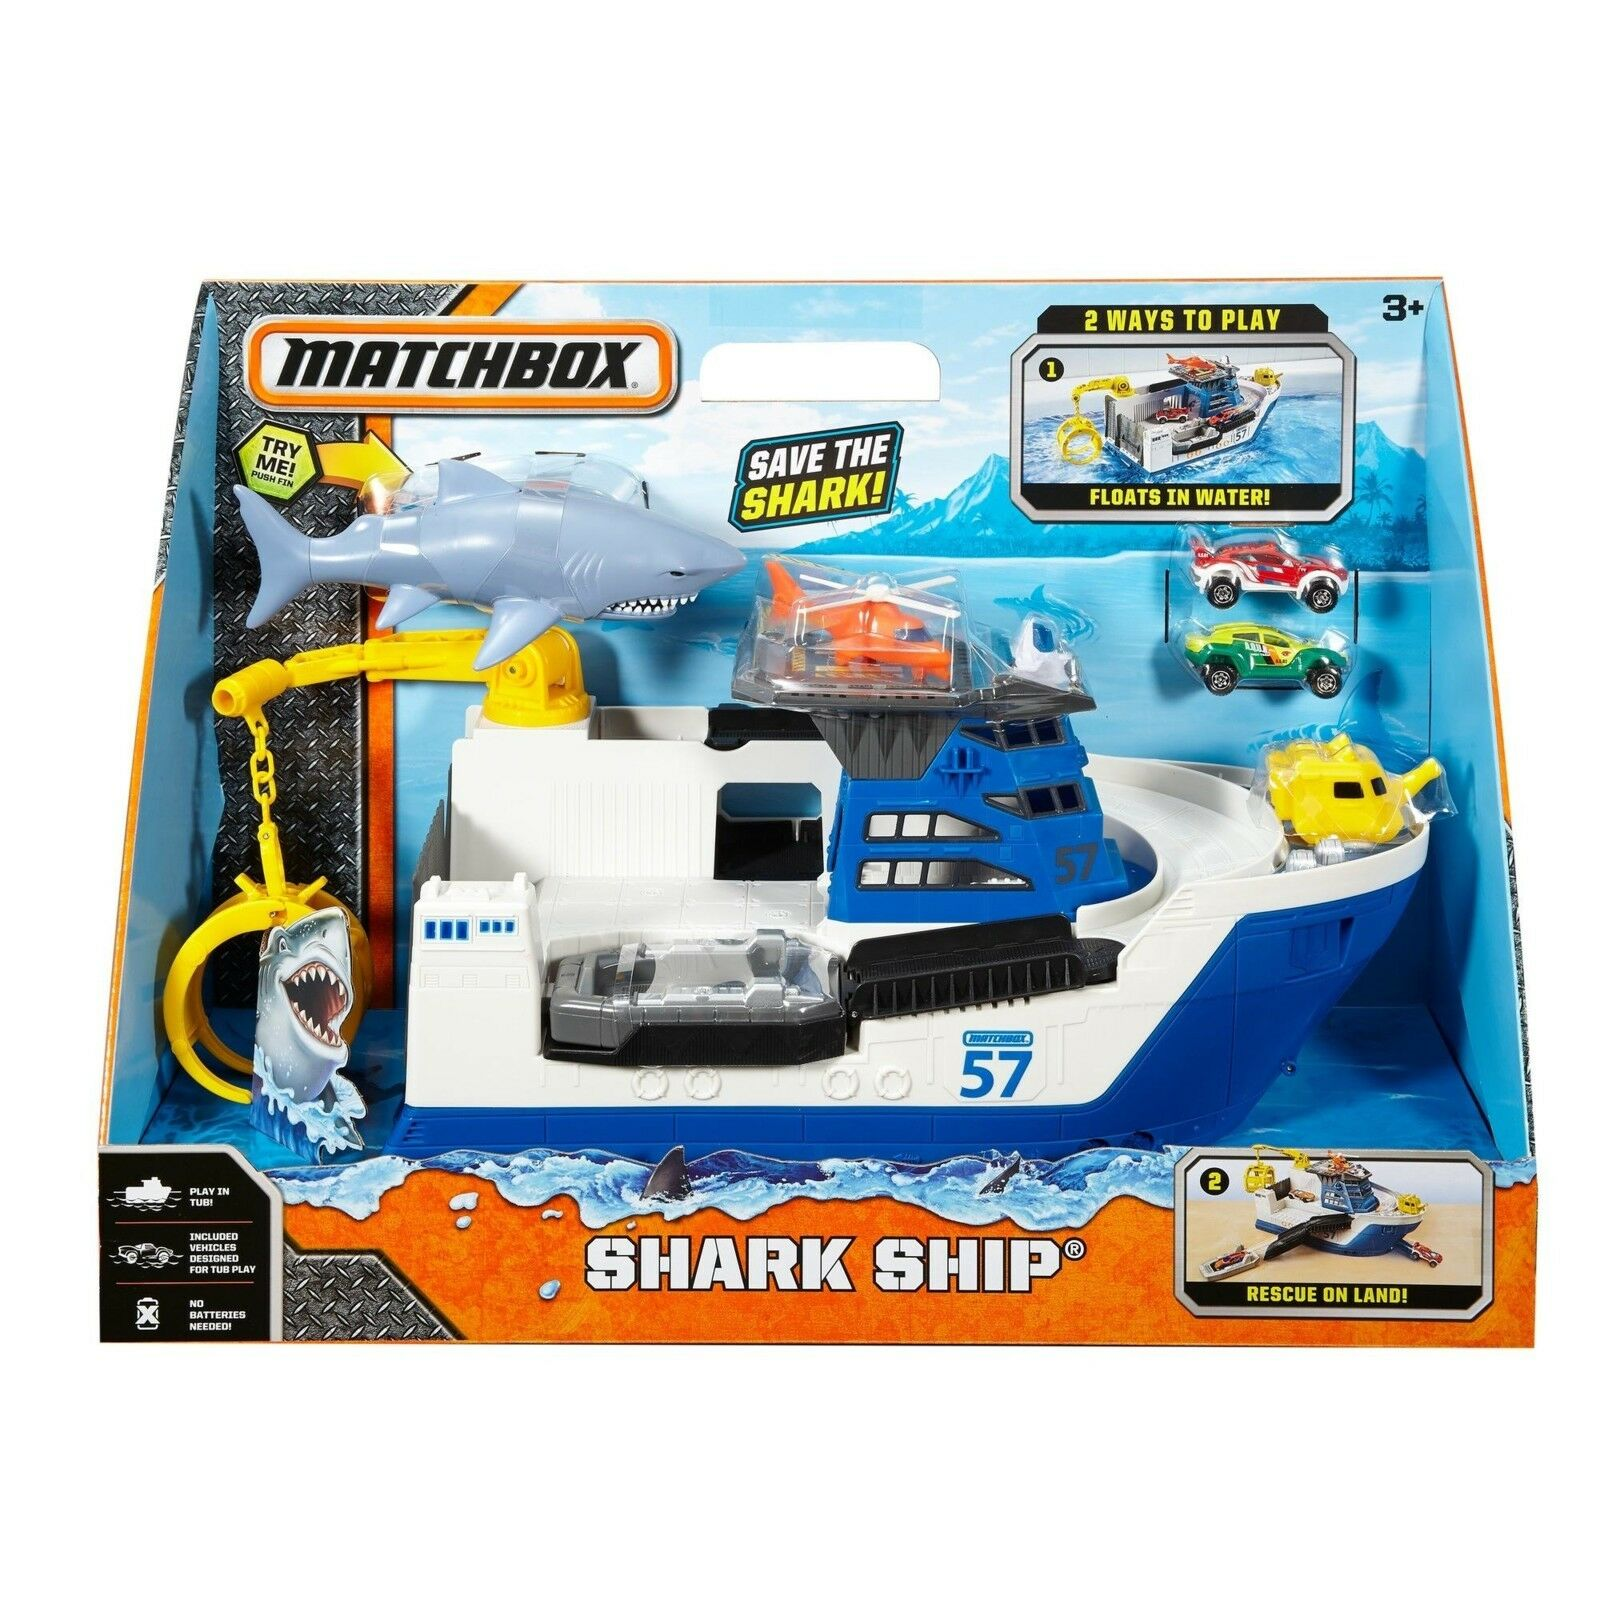 Matchbox Ship Shark Water Toy Mission Rescue Land Marine Mega Playset Rig Water